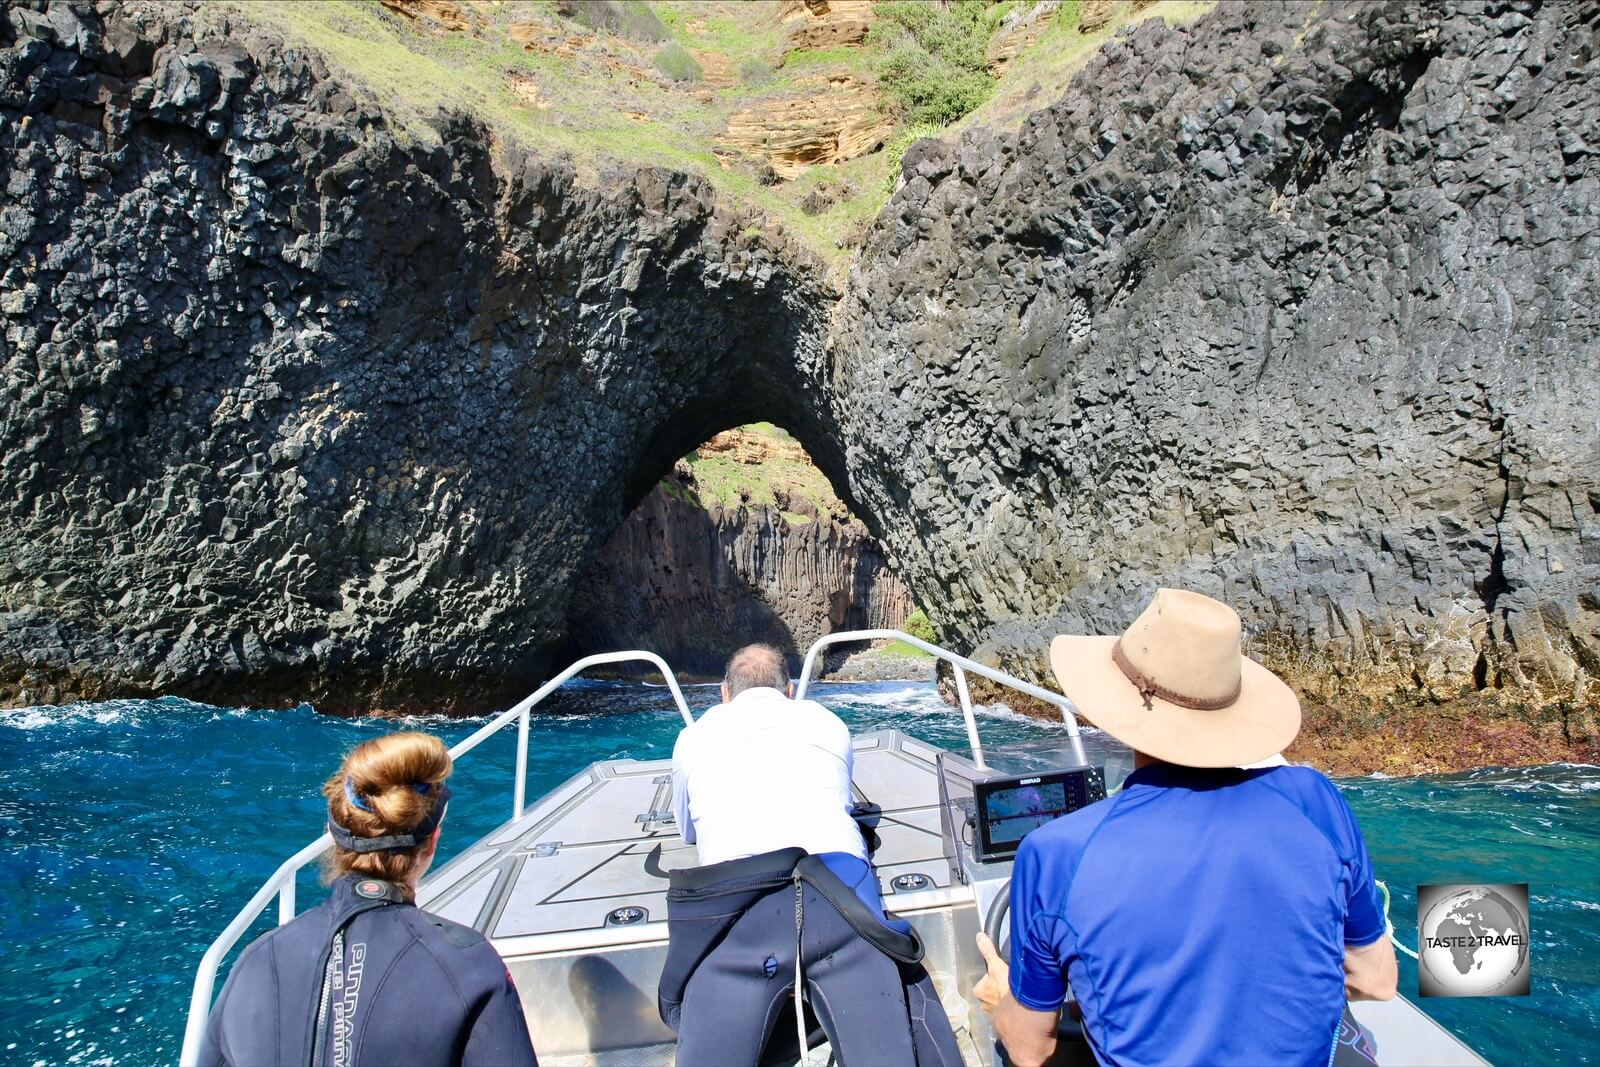 We passed through this impressive volcanic archway on the way to one of our dives sites.